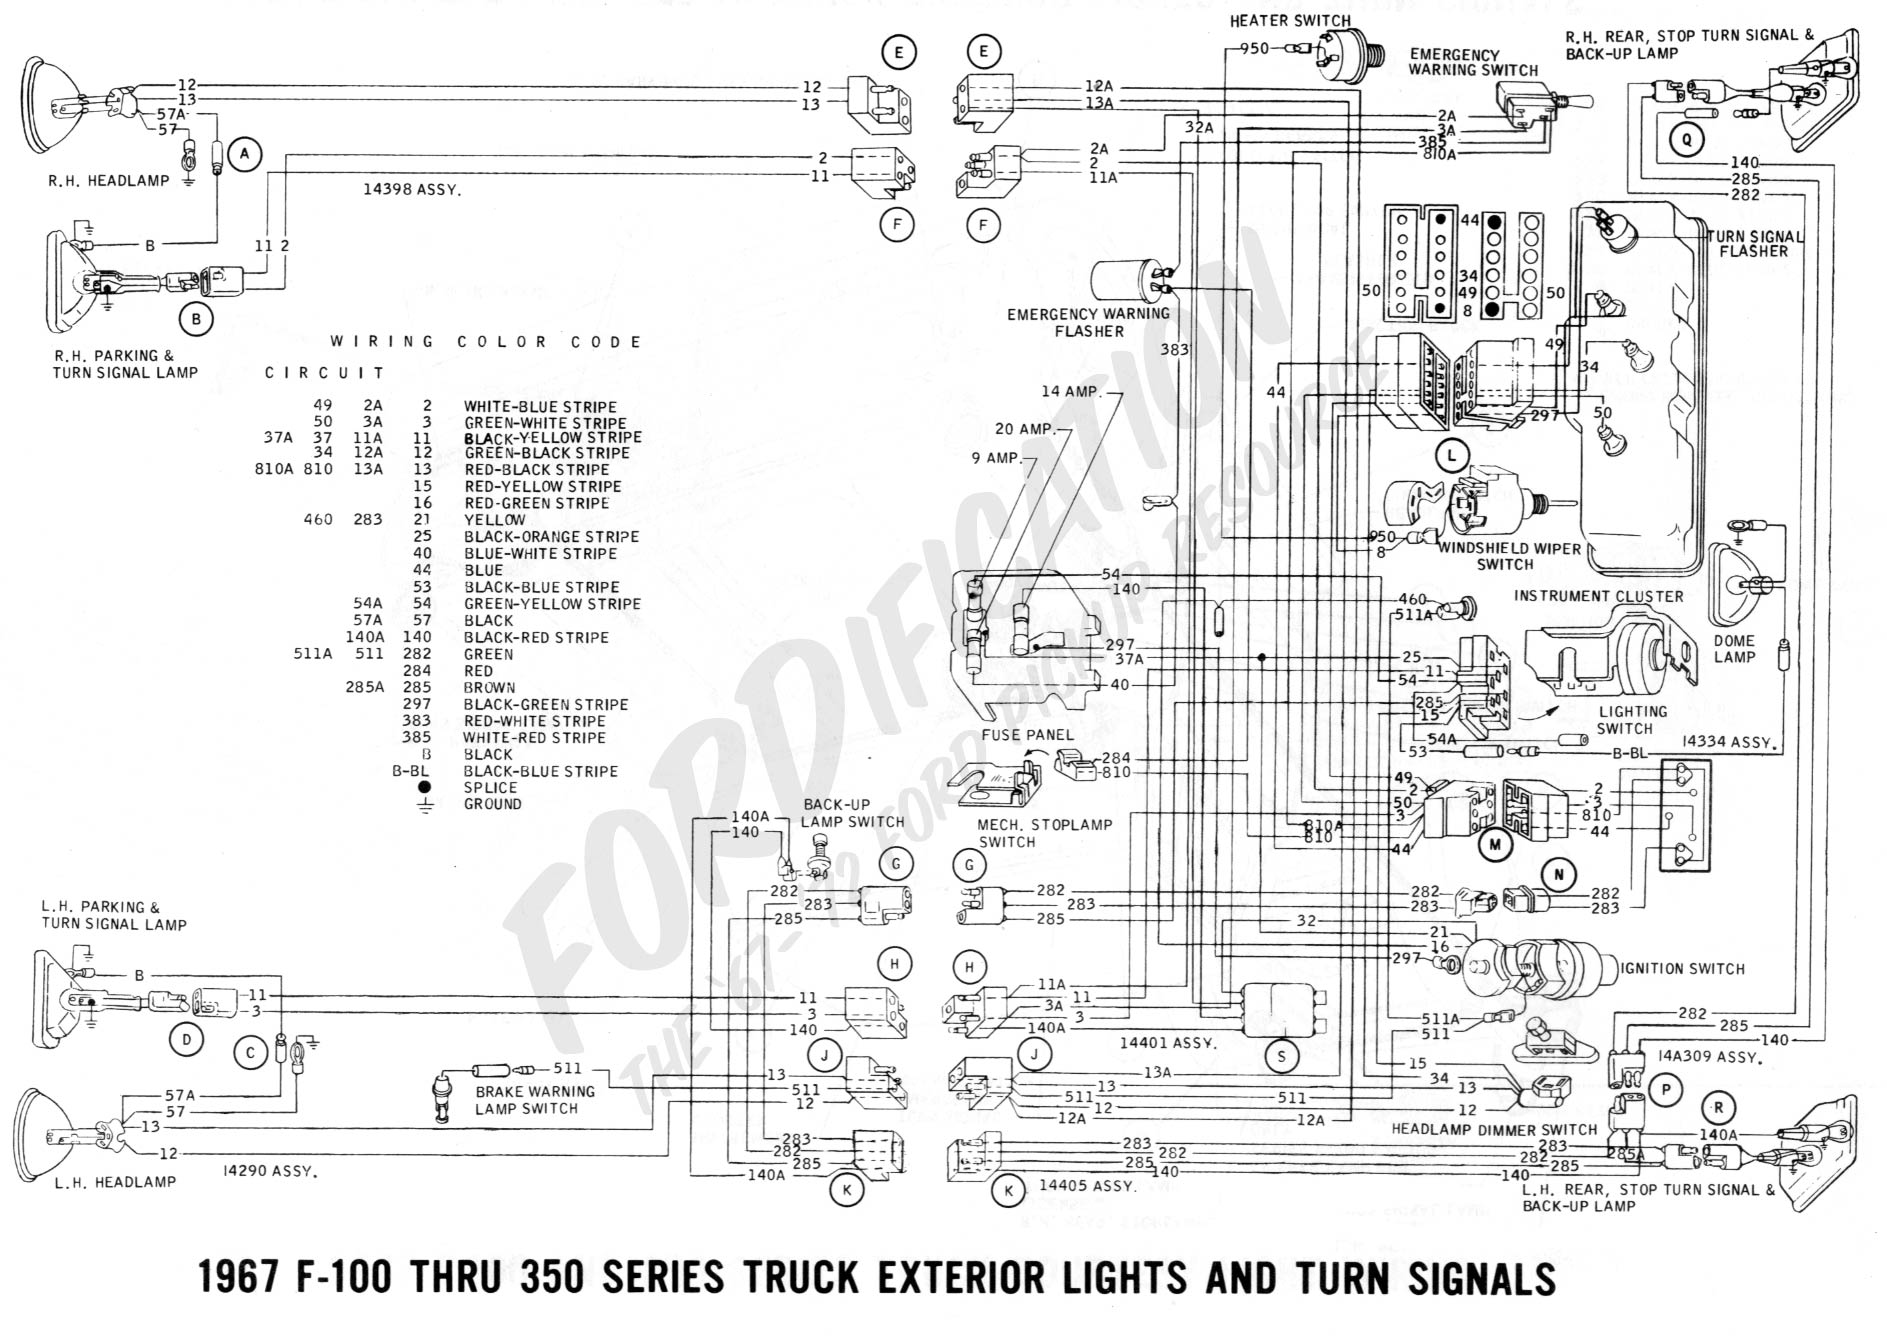 ford truck wiring diagrams detailed schematic diagrams rh 4rmotorsports com 1961 1963 Ford F 100 Wiring Diagram 61 f100 wiring diagram